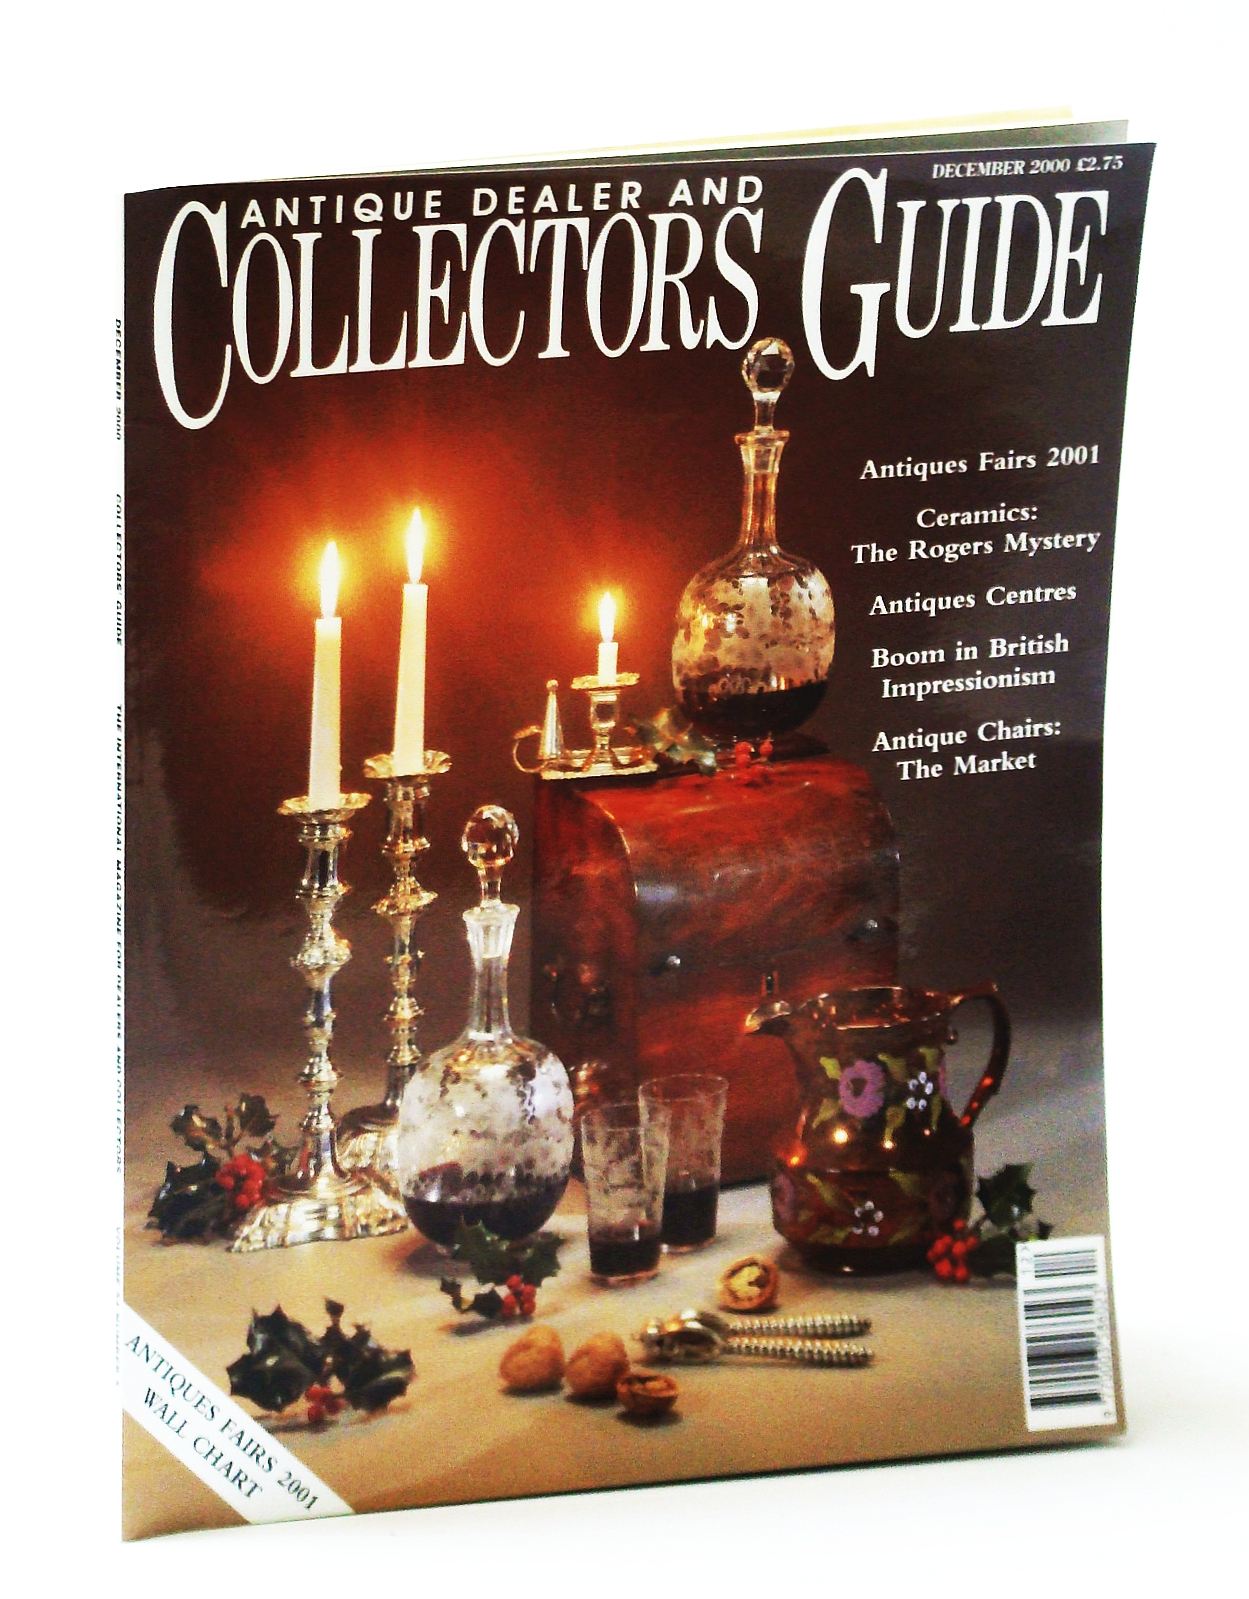 Image for Antique Dealer and Collectors Guide Magazine, December (Dec.) 2000 - The Worcester Porcelain Mystery of James Rogers / I Rogers